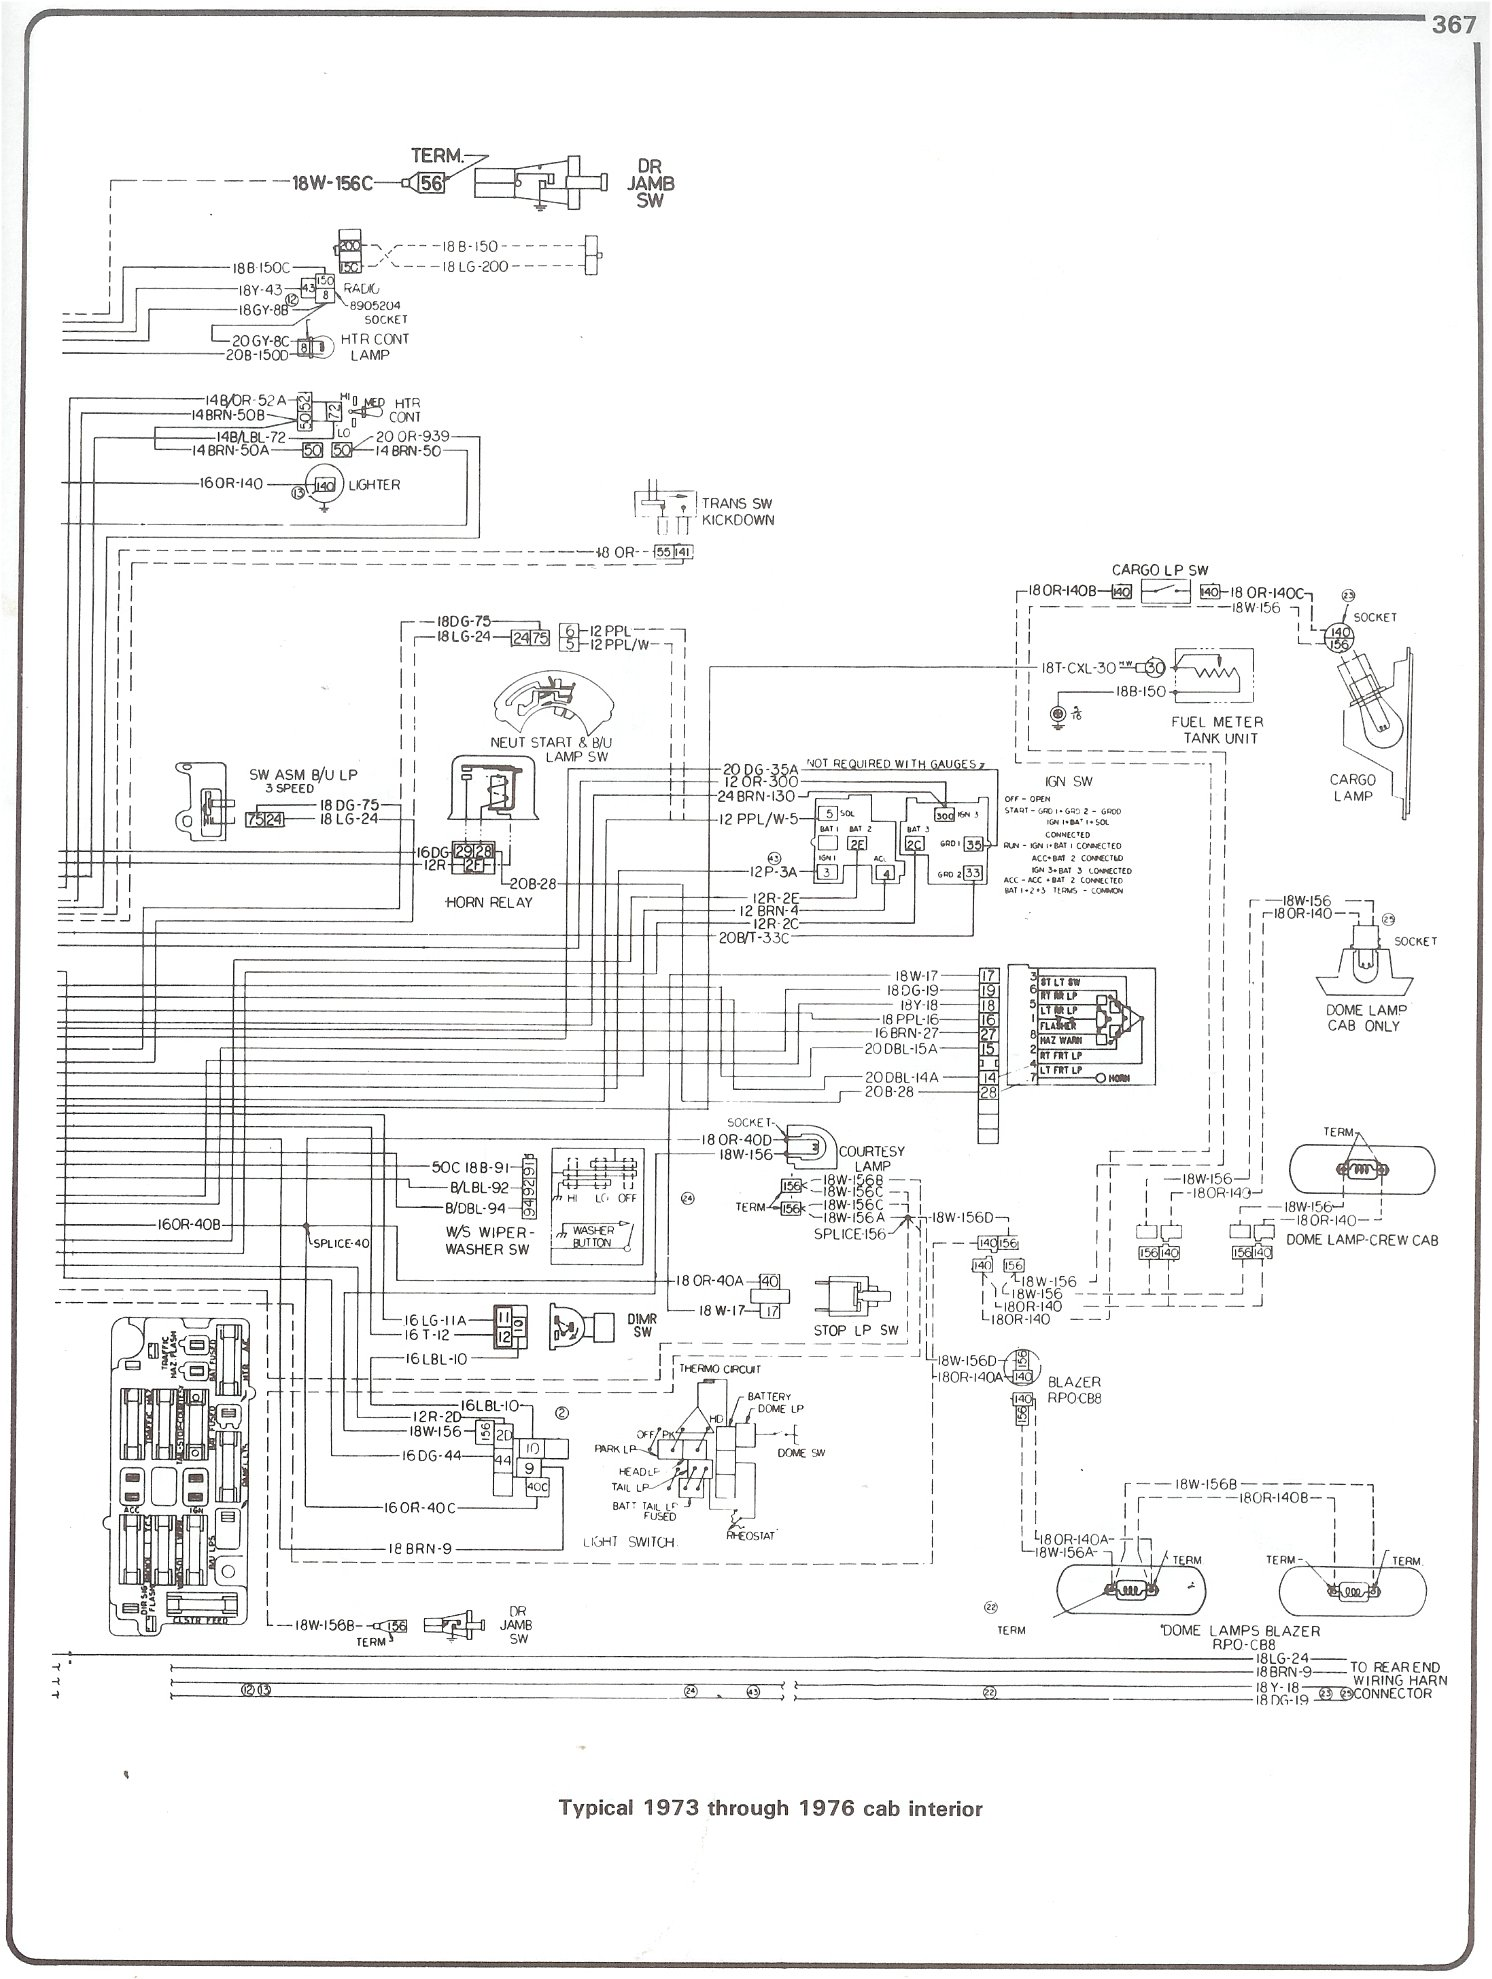 K10 Wiring Diagram 1977 Stepside Archive Of Automotive 7685n Alternator Complete 73 87 Diagrams Rh Forum 87chevytrucks Com